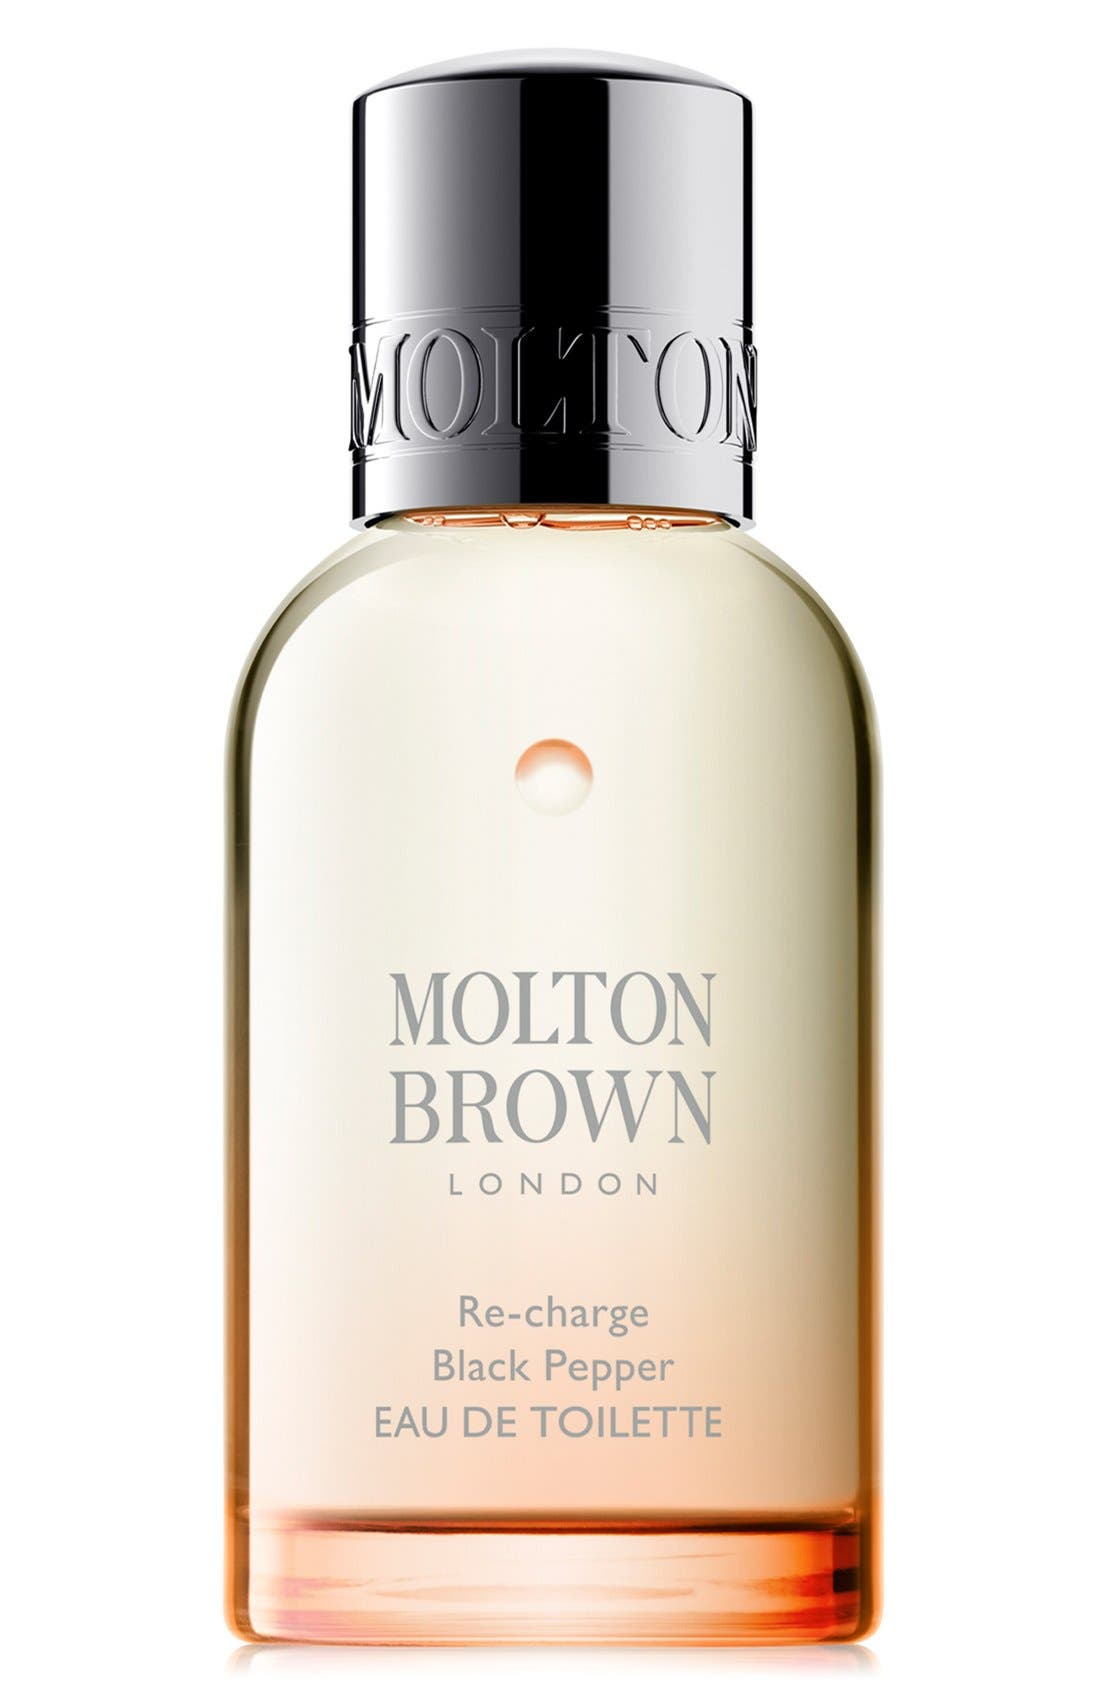 MOLTON BROWN London Re-charge Black Pepper Eau de Toilette Spray